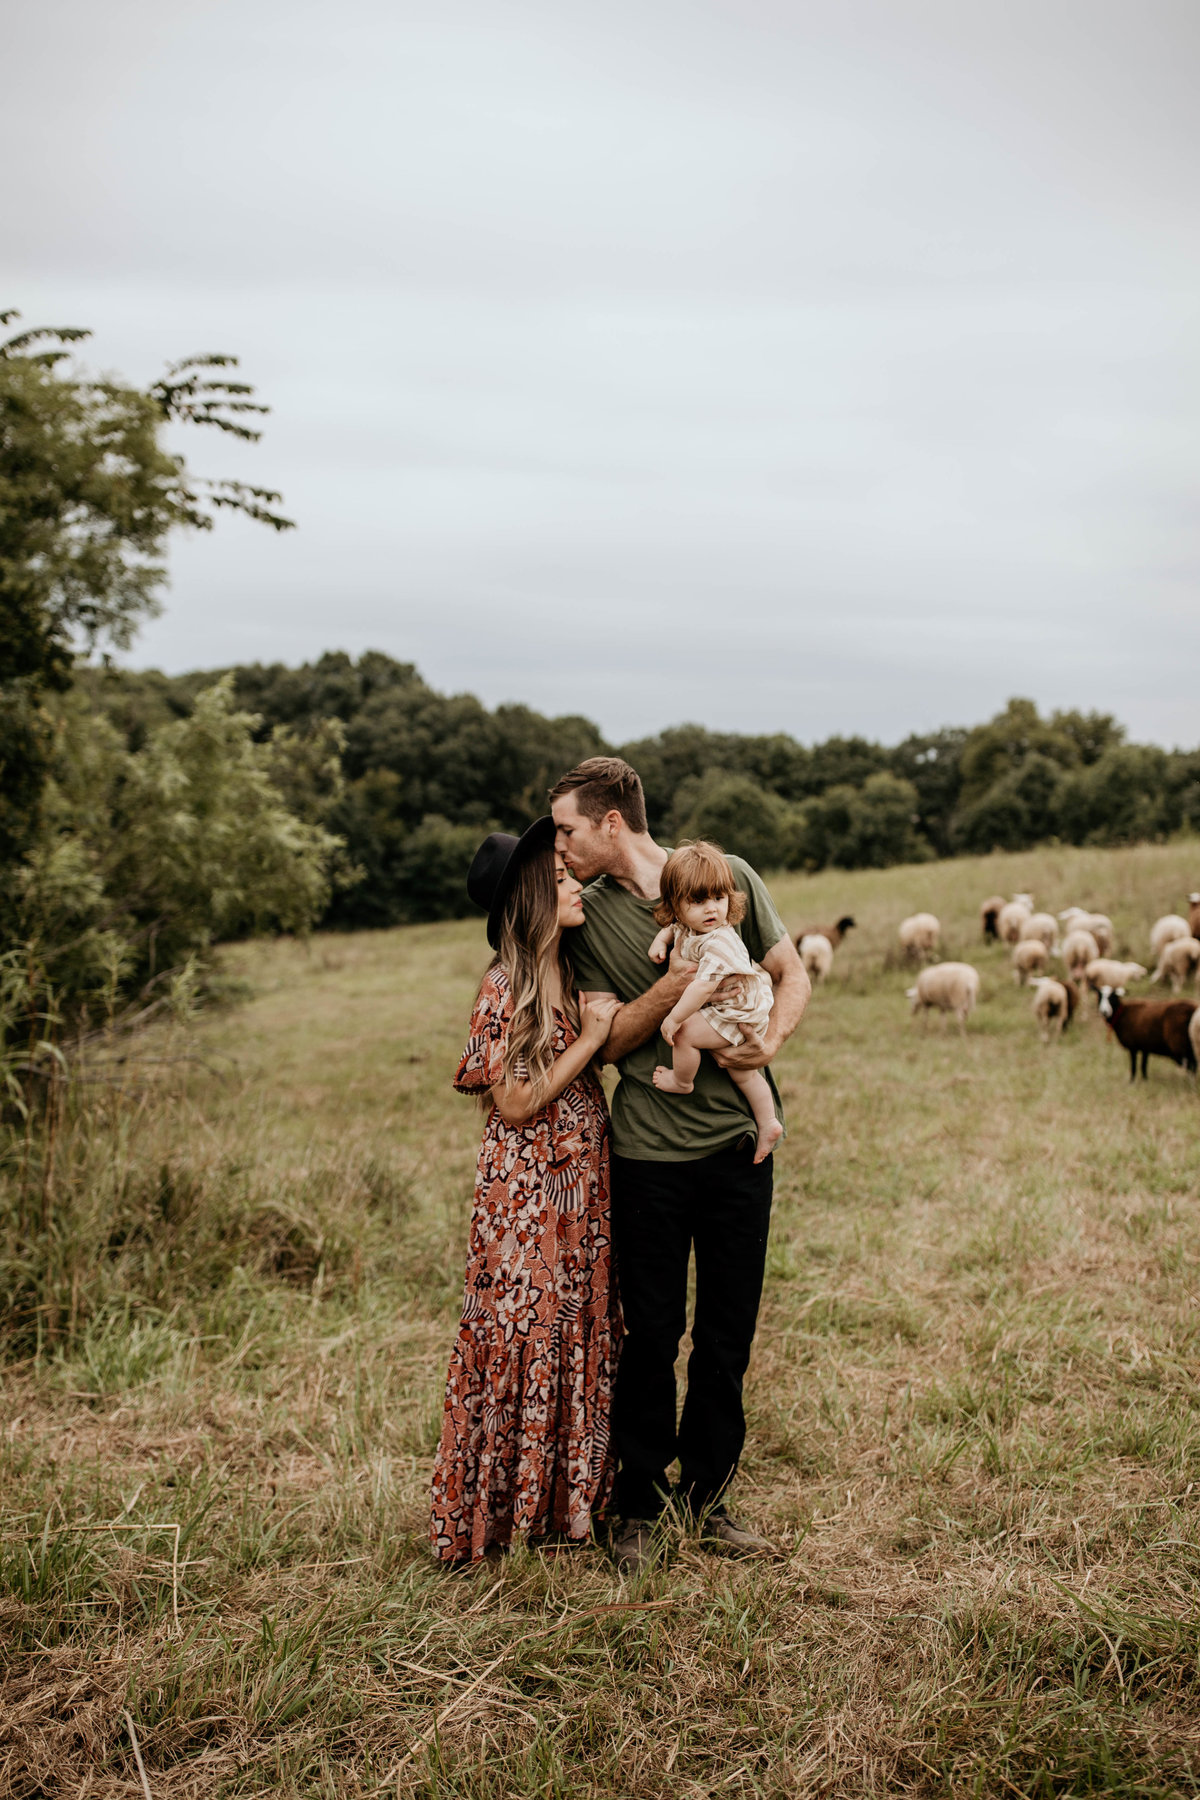 Andrea Corwin Photography Family Photographer Wichita Photographer Kansas - Sheep Farm (5 of 41)